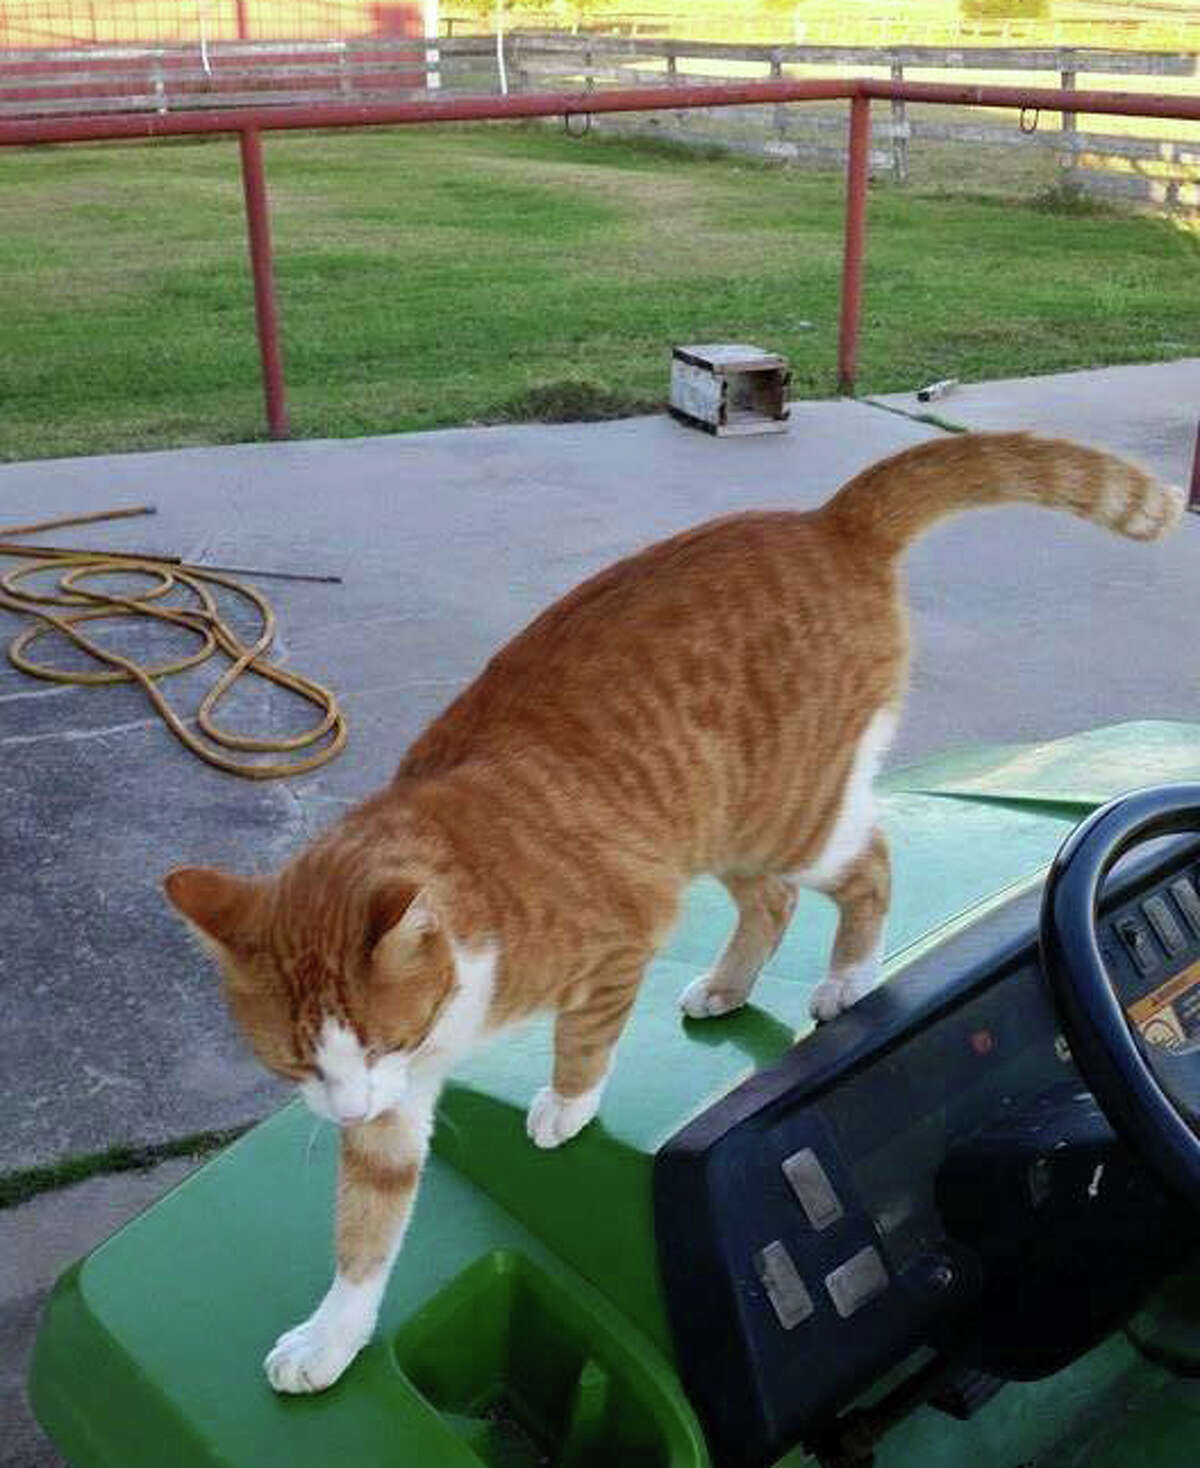 Representatives with True Blue Animal Rescue in Brenham now say that the cat was in fact not feral but a foster cat that was owned by the group. (Source: Facebook)